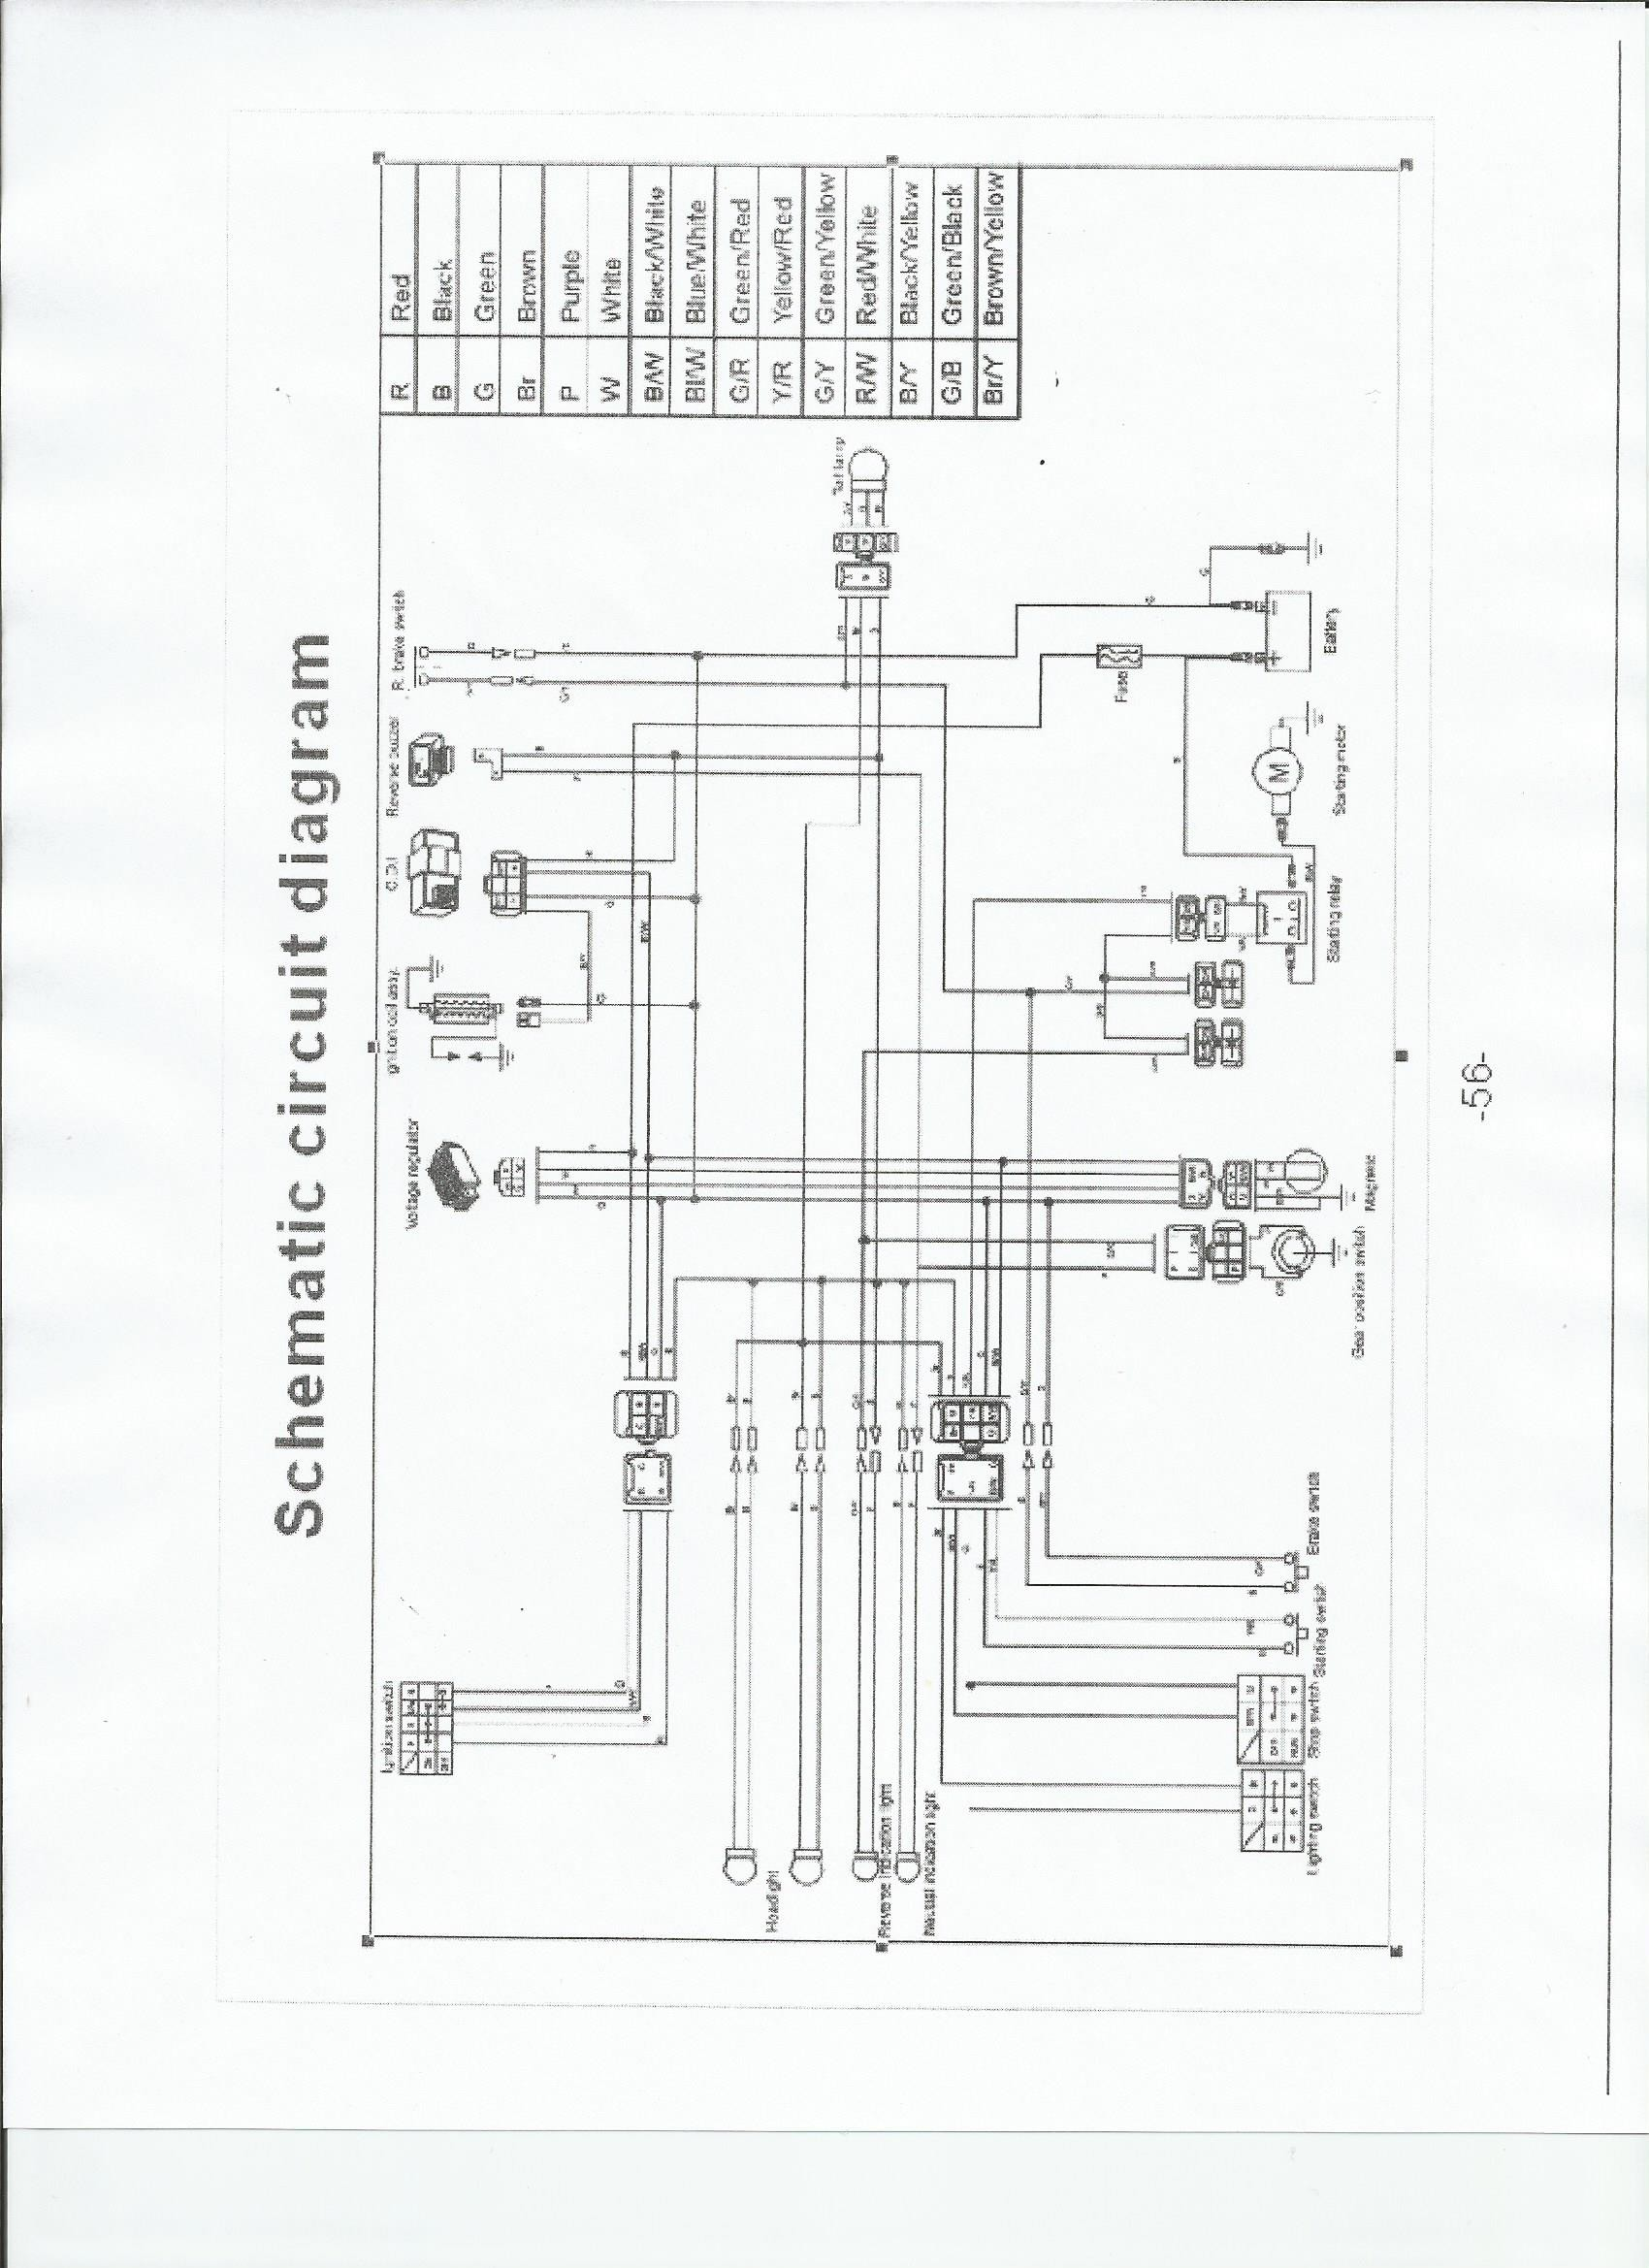 107 atv wiring harness wiring diagrams my107 atv wiring harness wiring diagram schematics 107 atv wiring harness